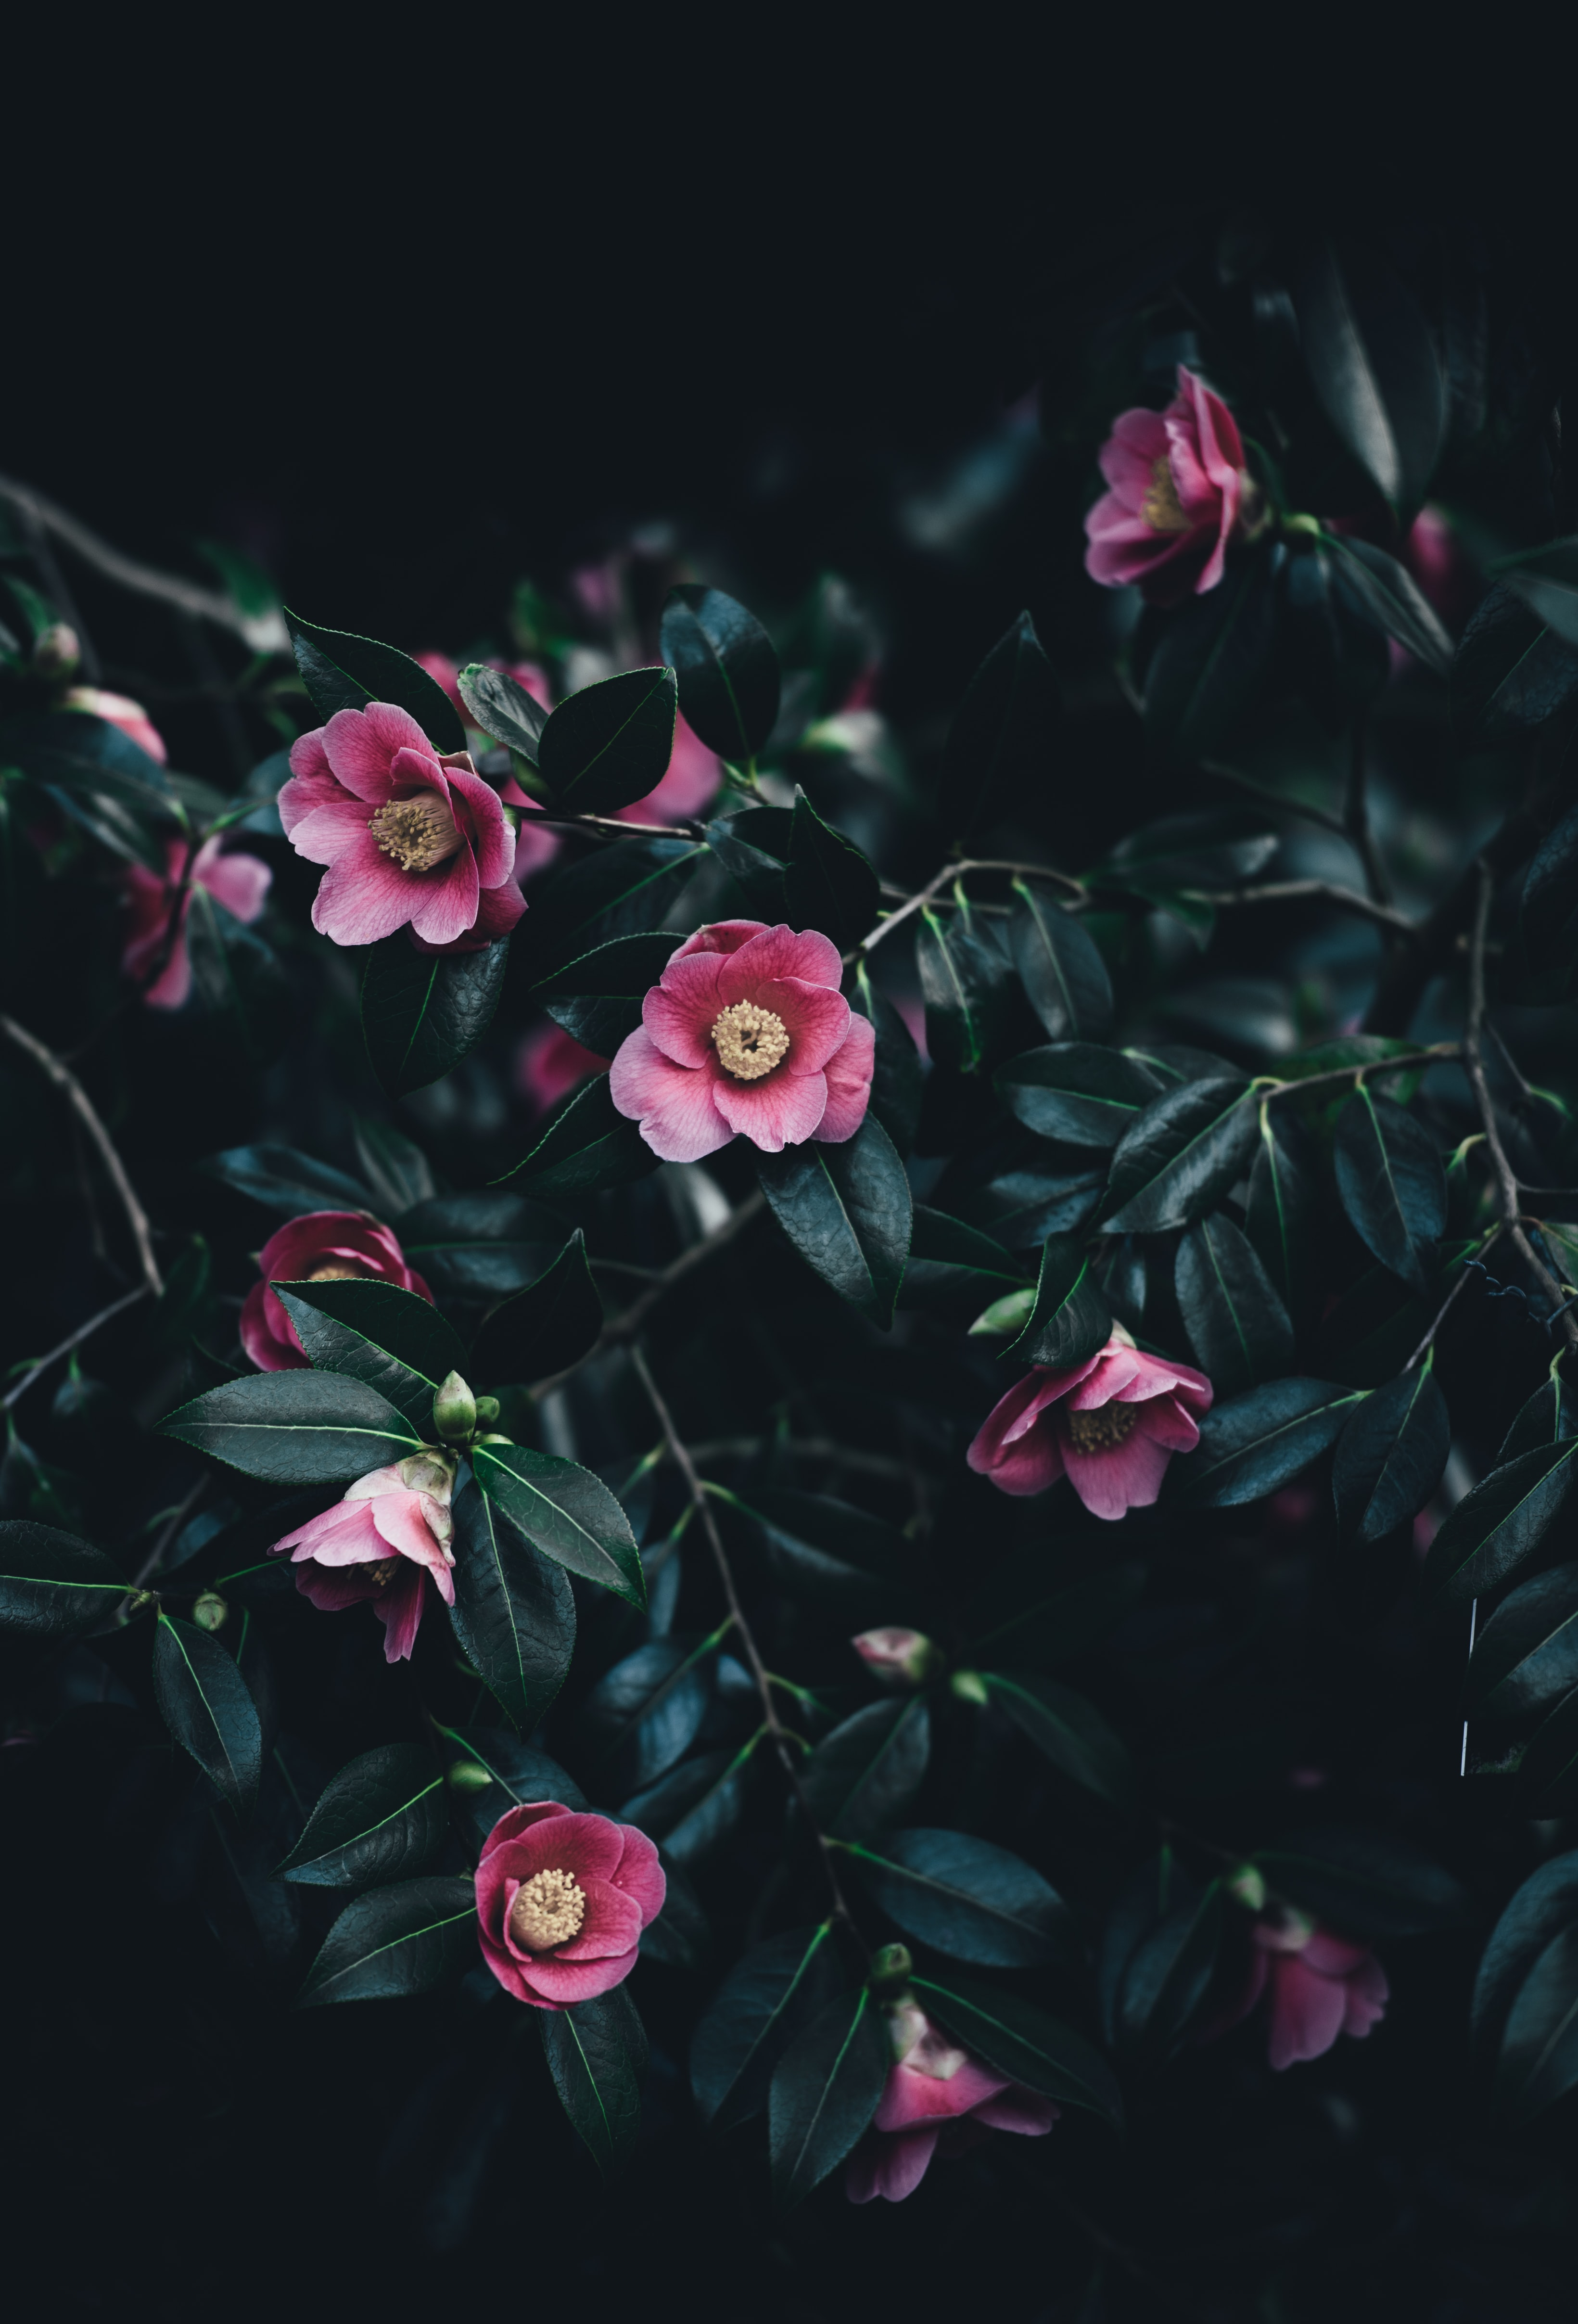 Small pink camellia flowers among dark green leaves